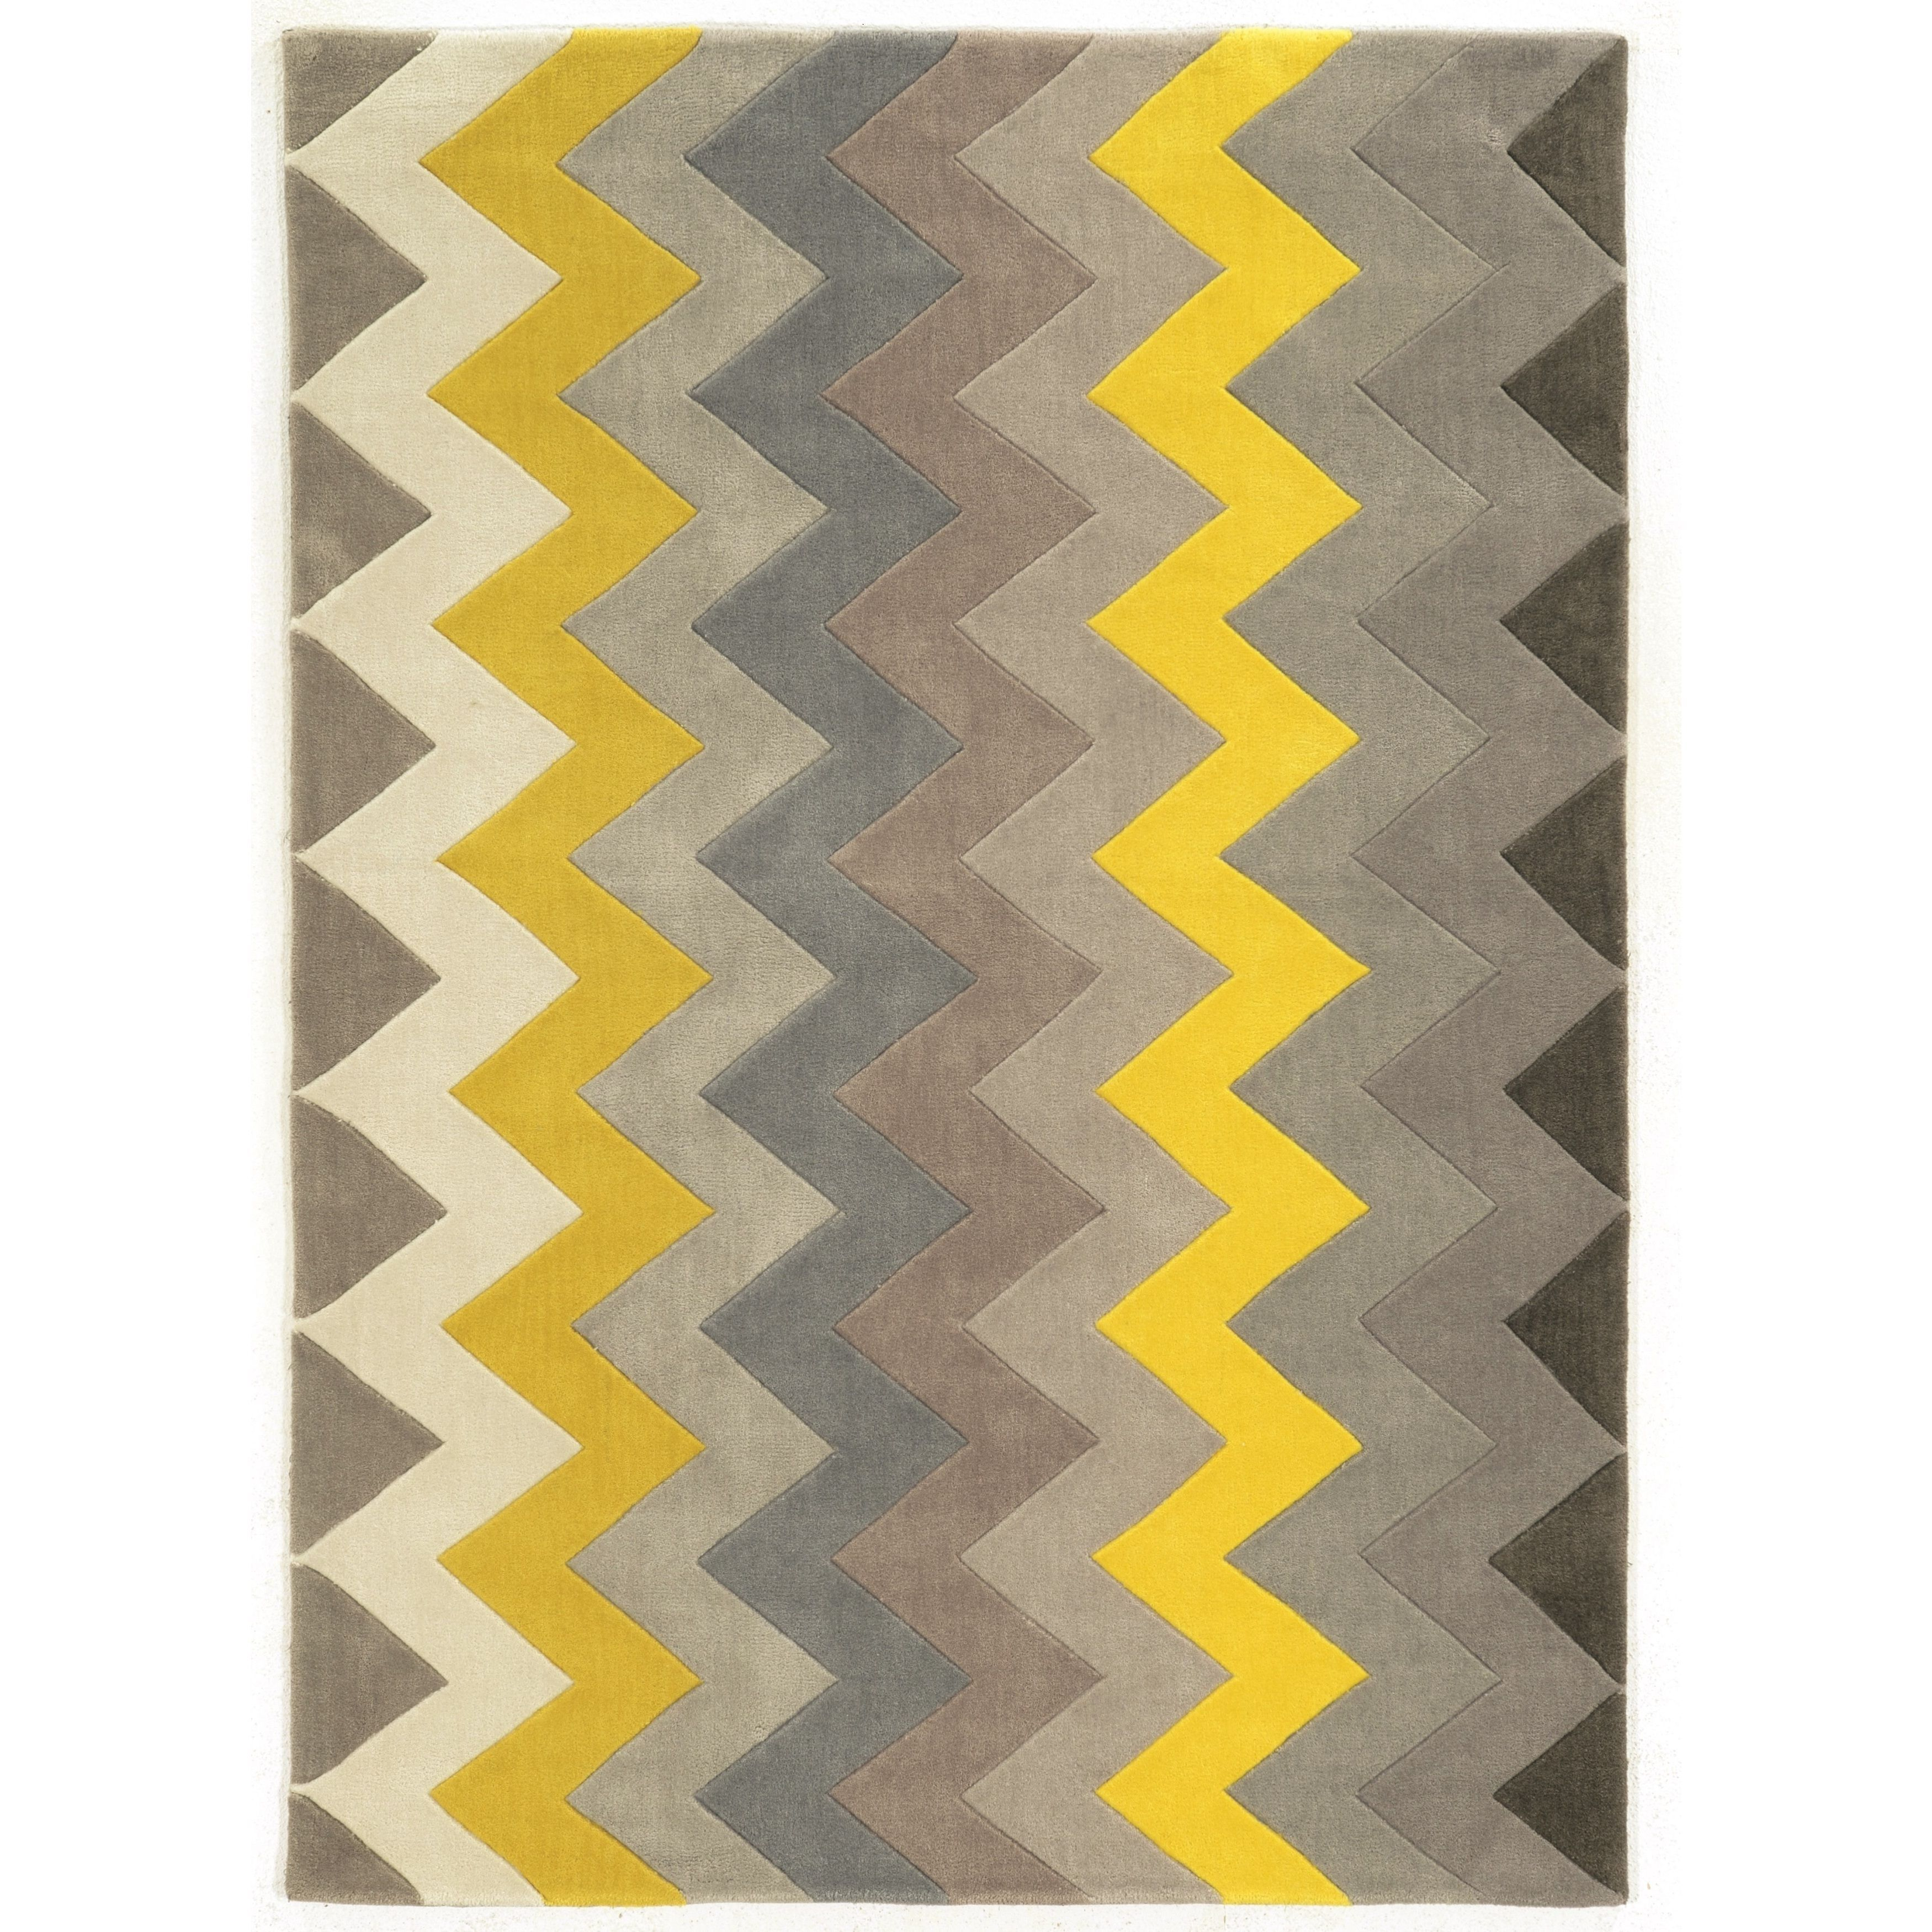 The Trio Collection Of Area Rugs Offers Transitional Styling That